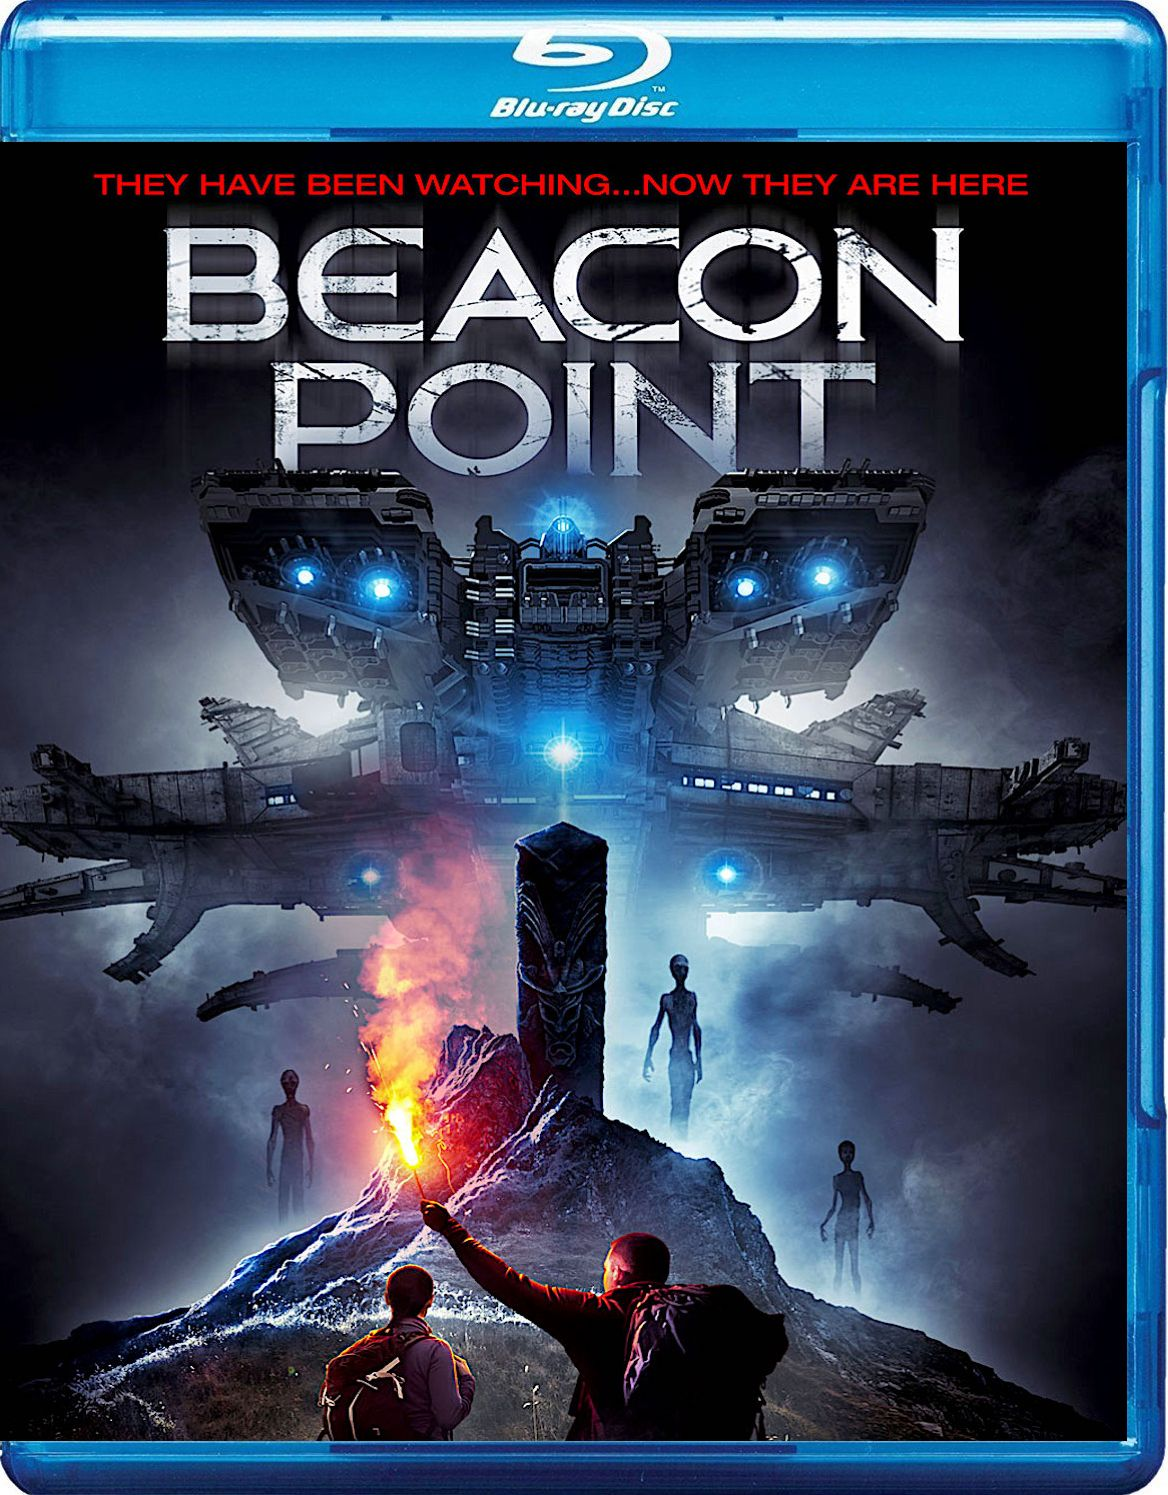 BEACON POINT BLURAY (UNCORK'D ENTERTAINMENT) (With images